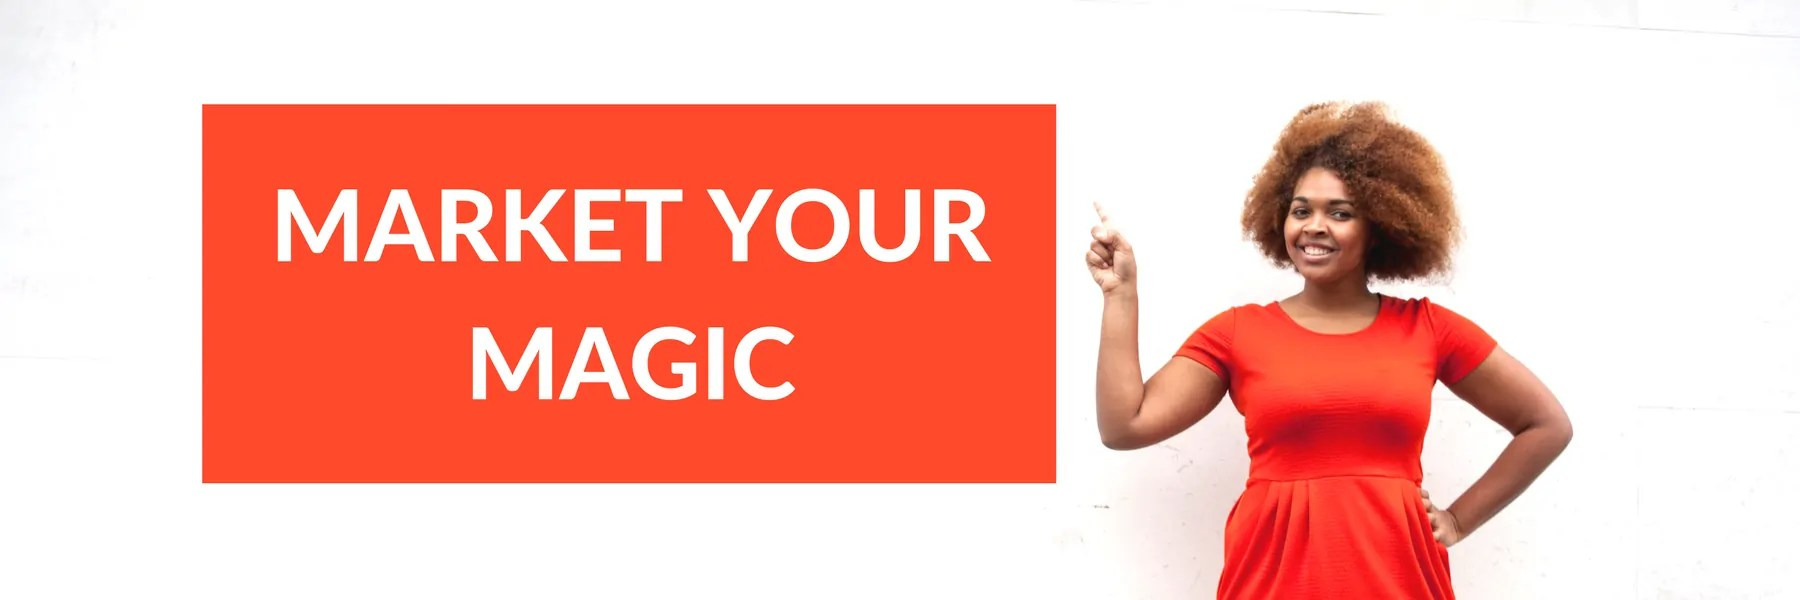 Market Your Magic Banner